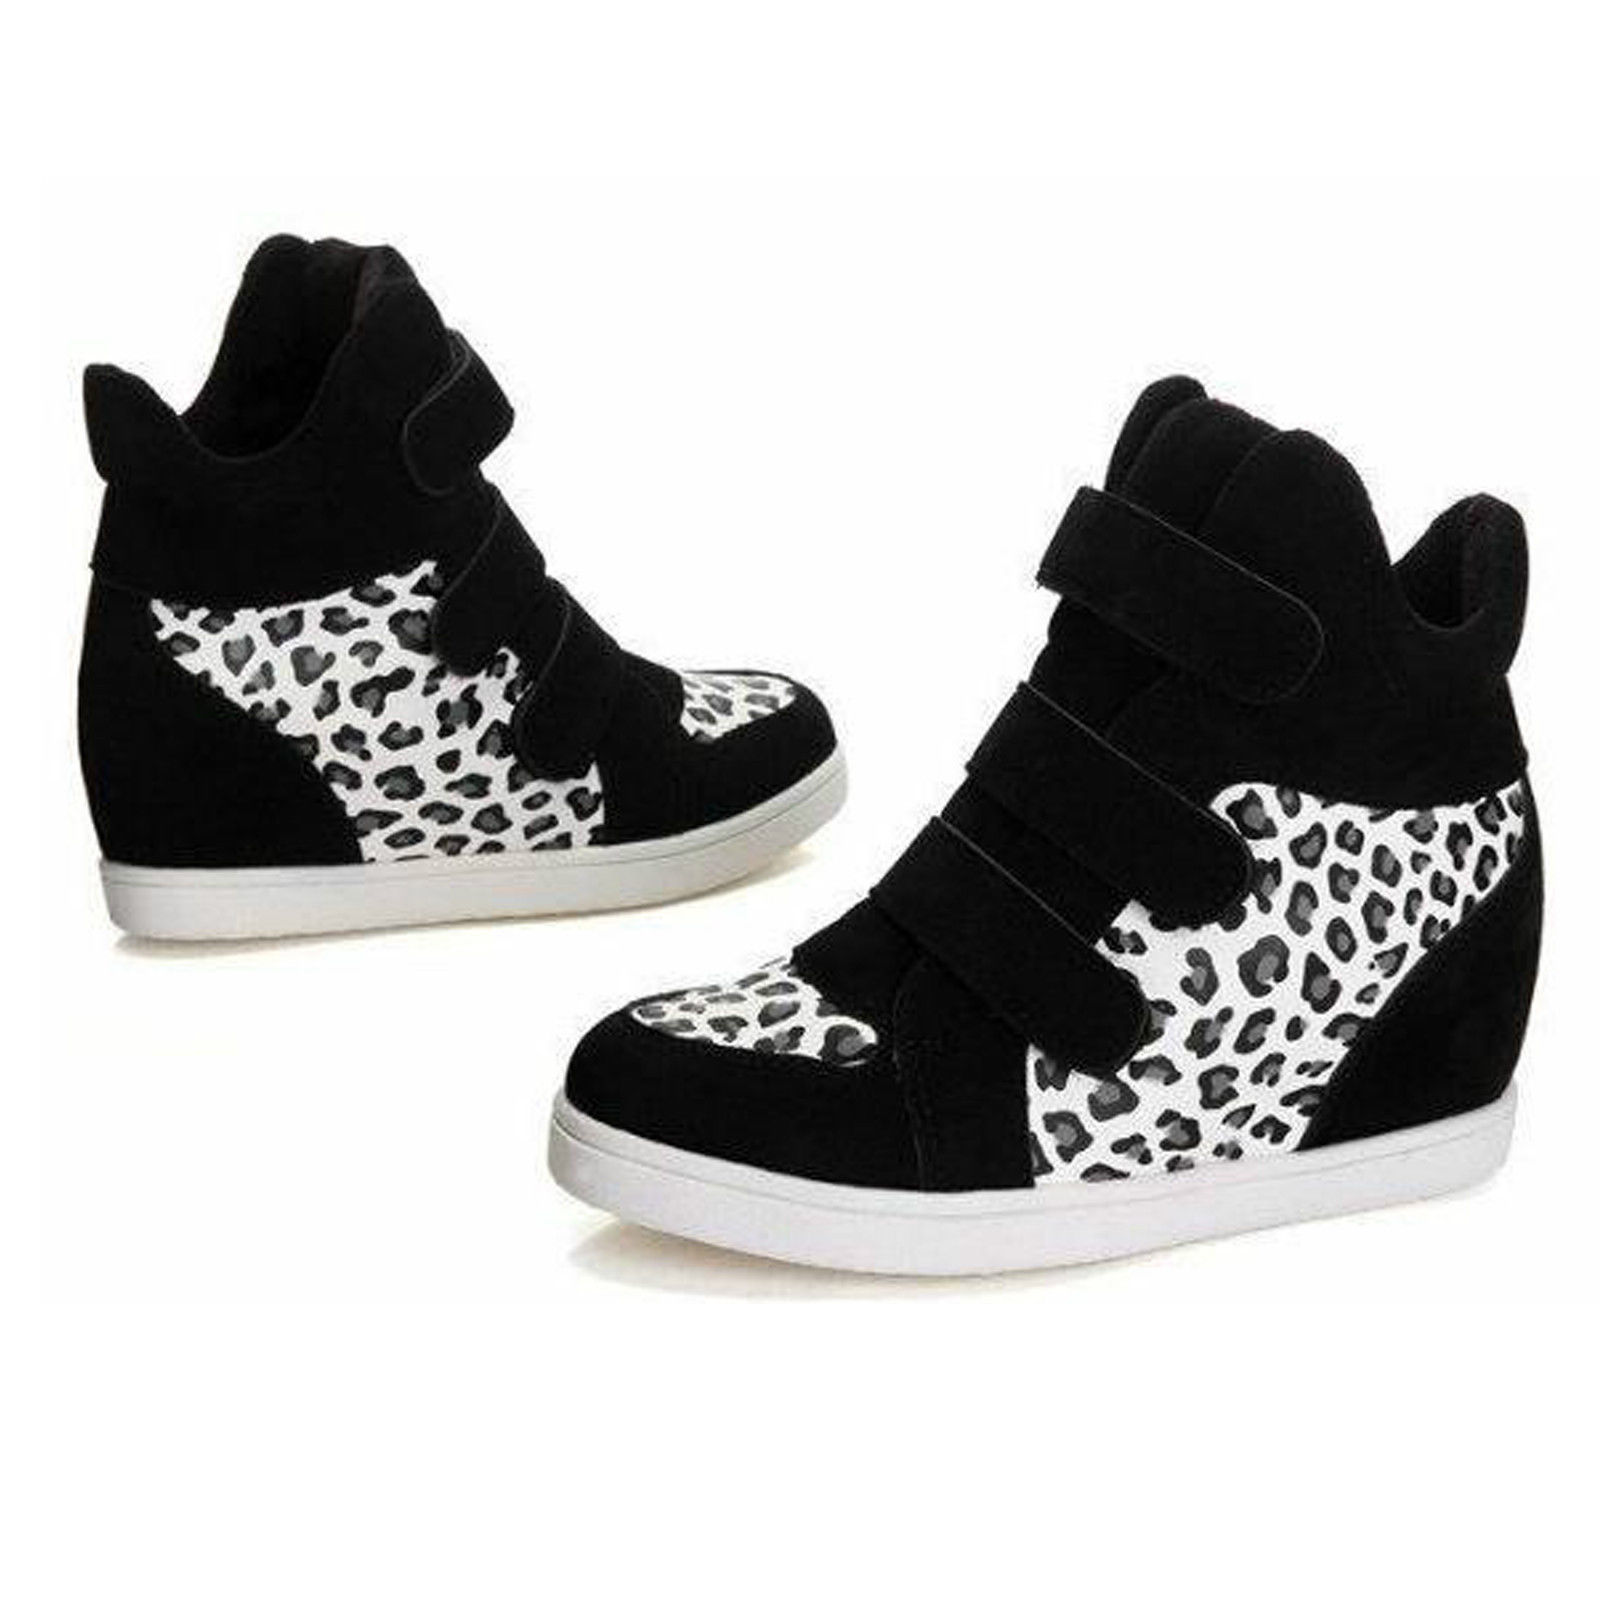 2016 new fashion wedge heels high top ankle